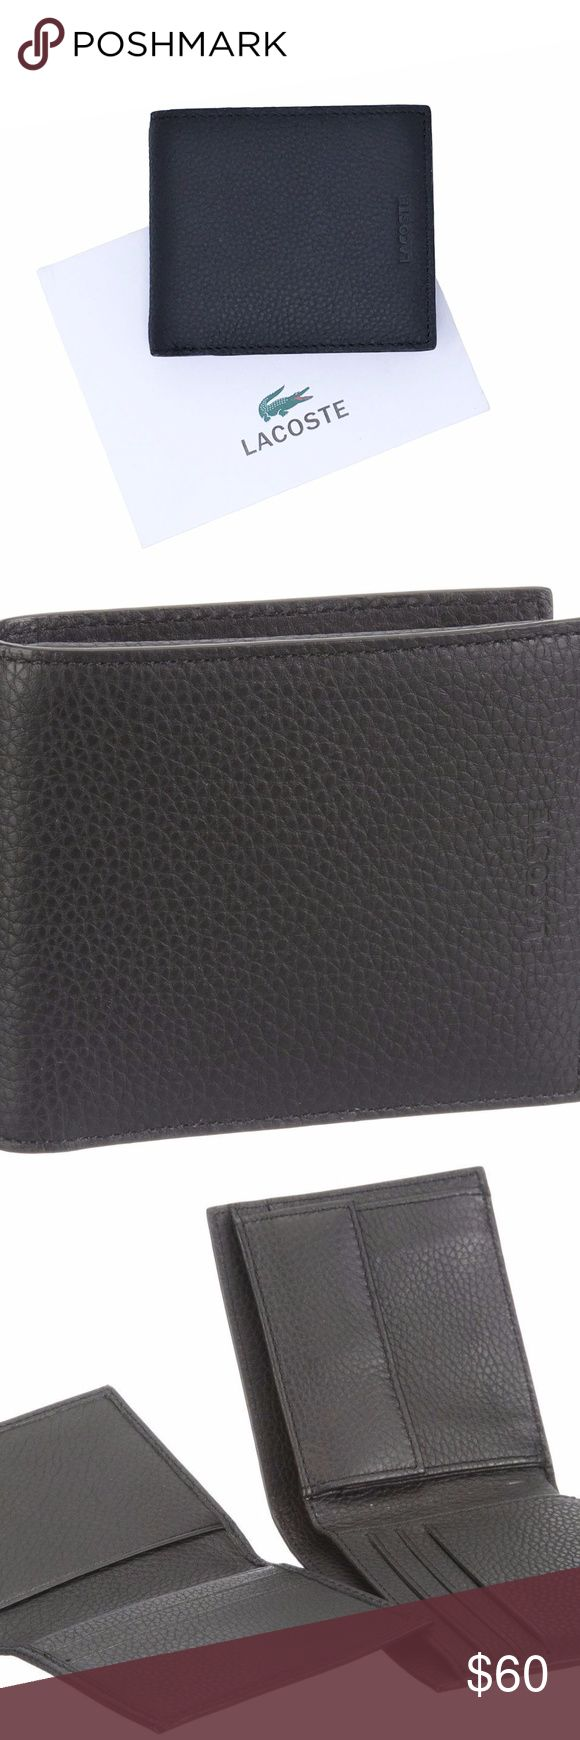 Lacoste Passcase Coin Pocket Leather Bifold Wallet New in box Lacoste leather passcase bifold wallet in black.  Features coin pocket with snap button closure.  Interior features 3 card slots, 1 billslot, and 2 slip pockets. Removable passcase features 2 card slots and 2 slip pockets. Lacoste gift box included. Lacoste Bags Wallets